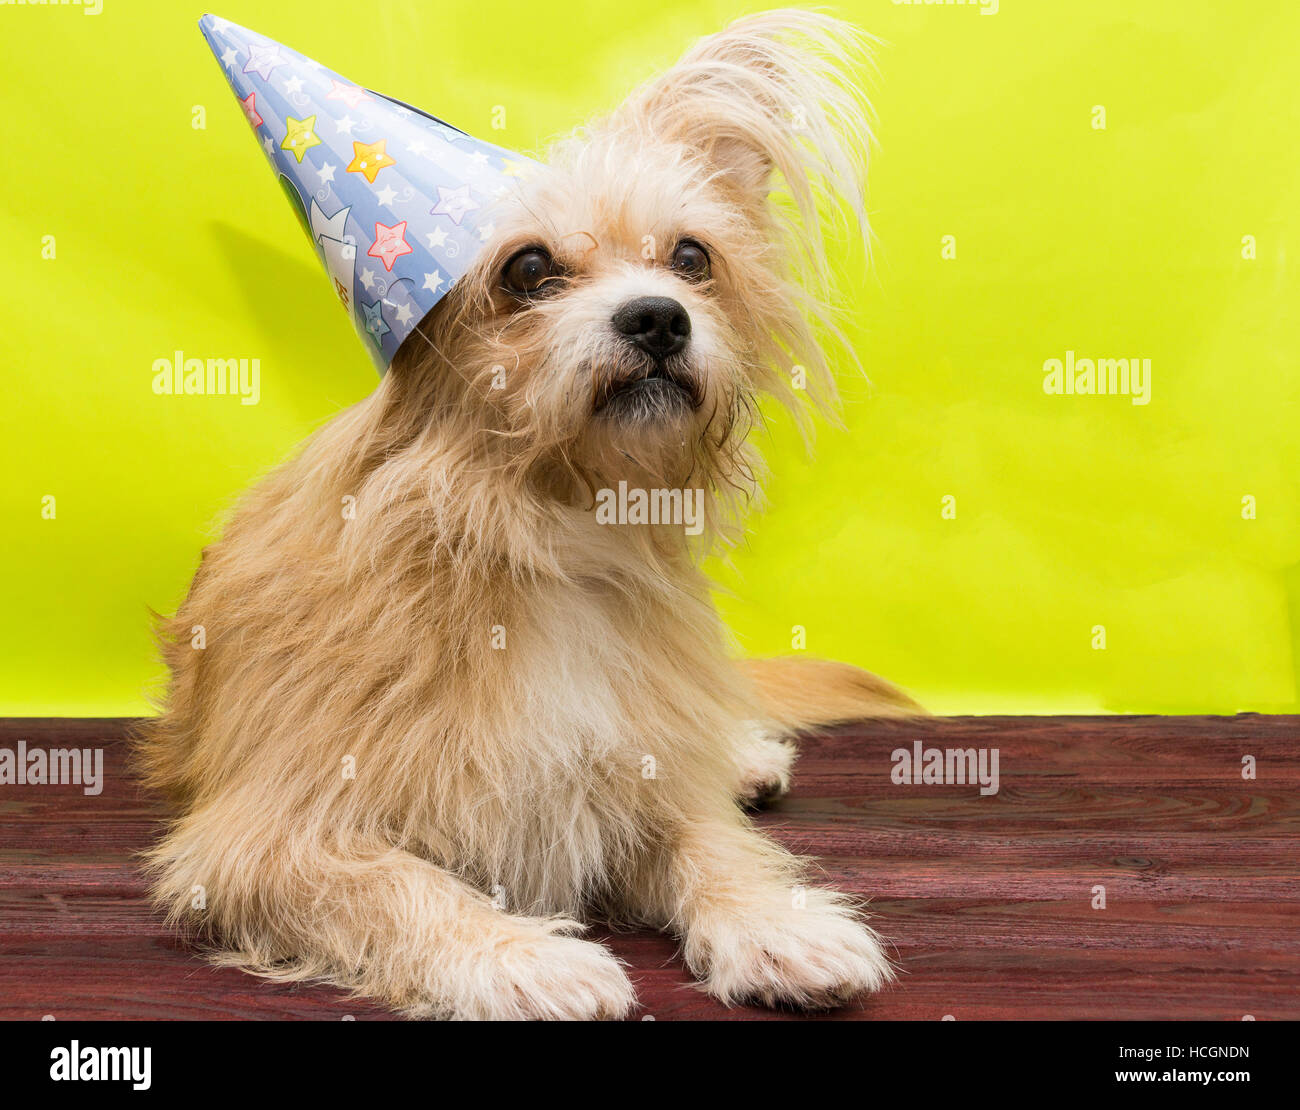 The photo shows a dog in the cap - Stock Image